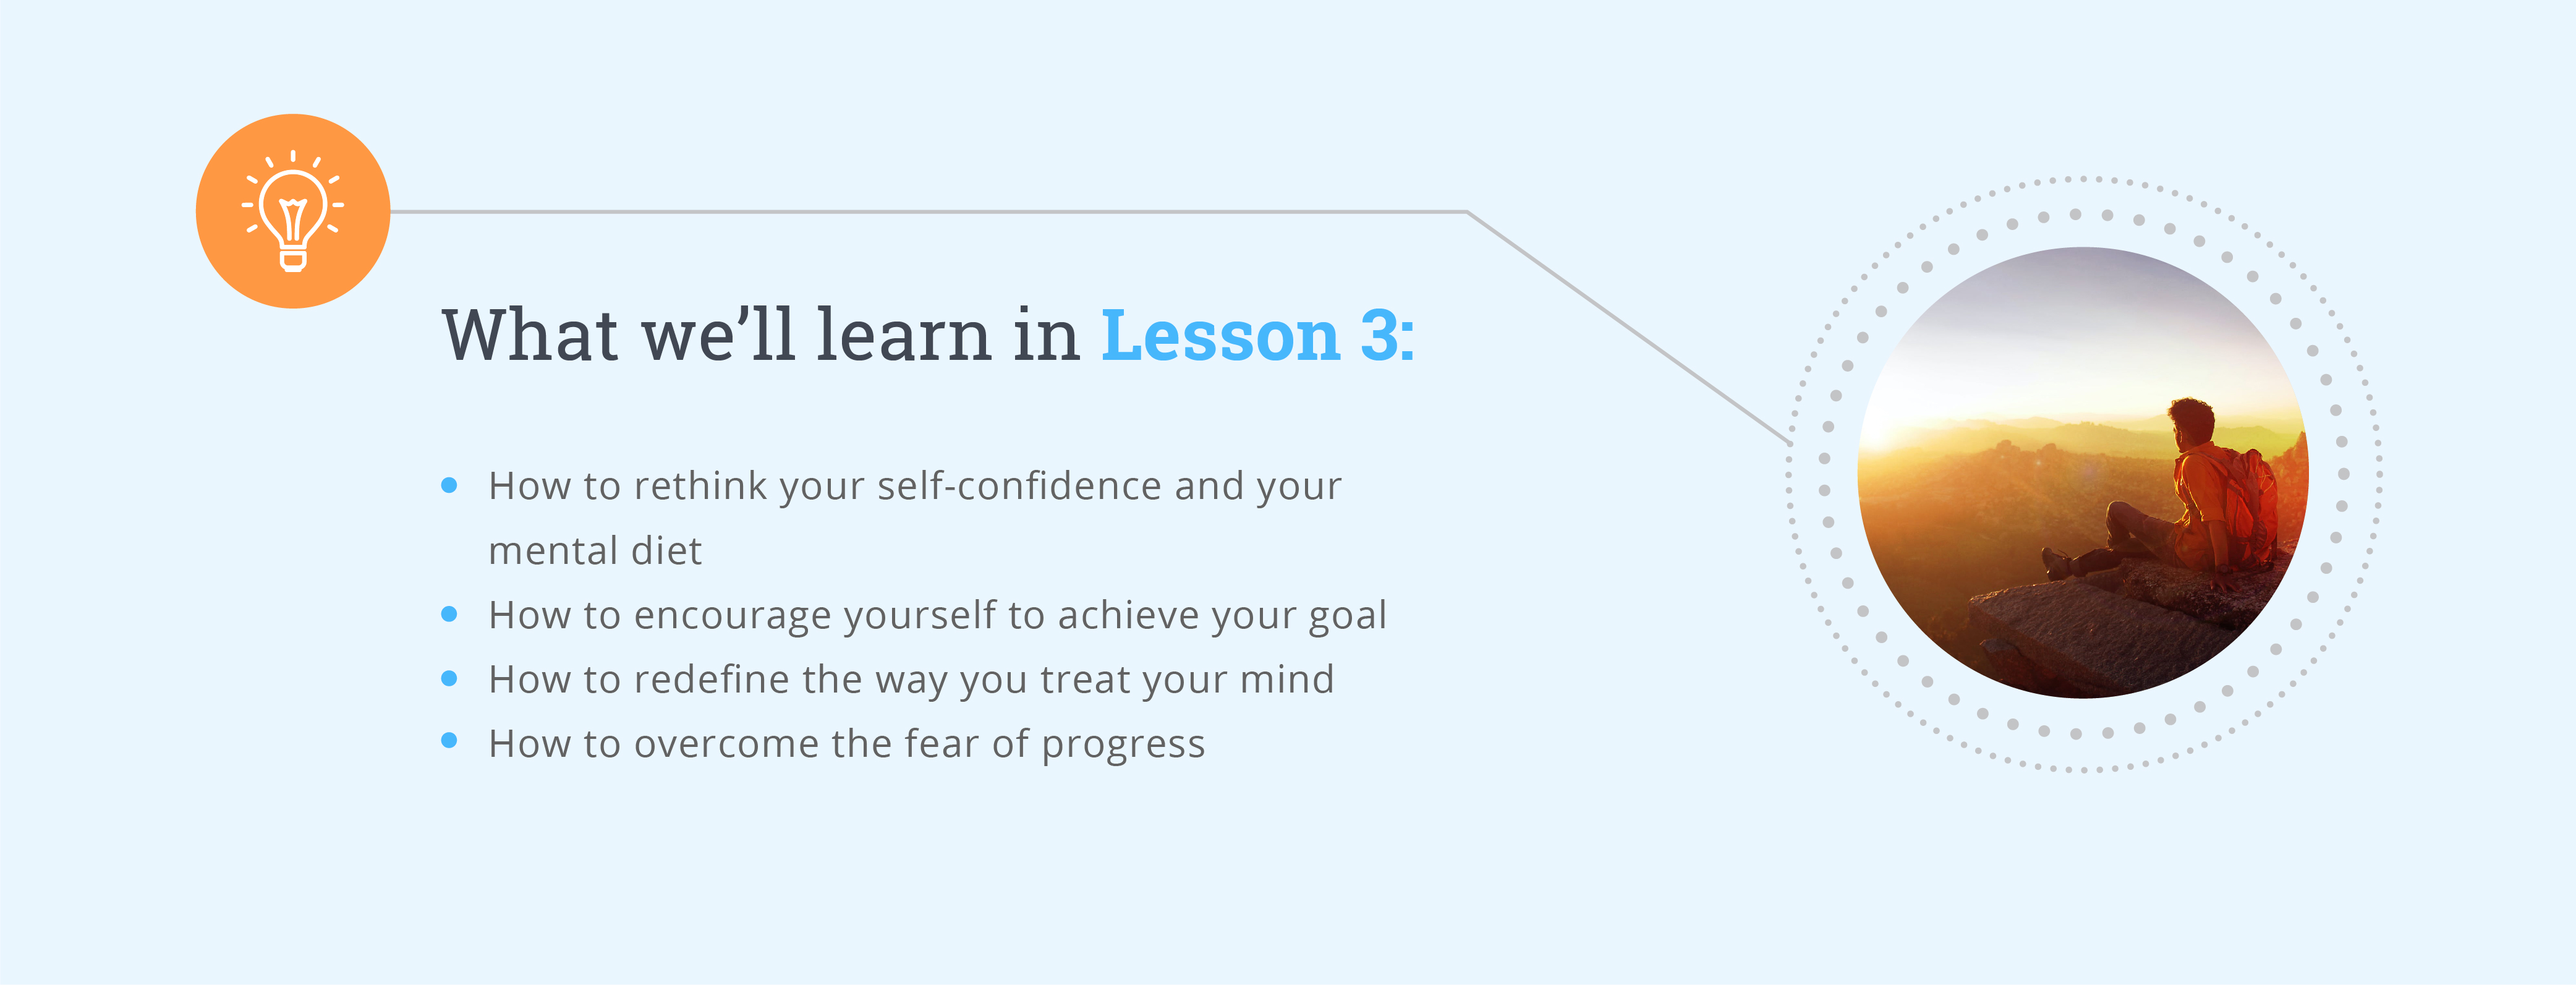 Reaching Your Goals Lesson 3